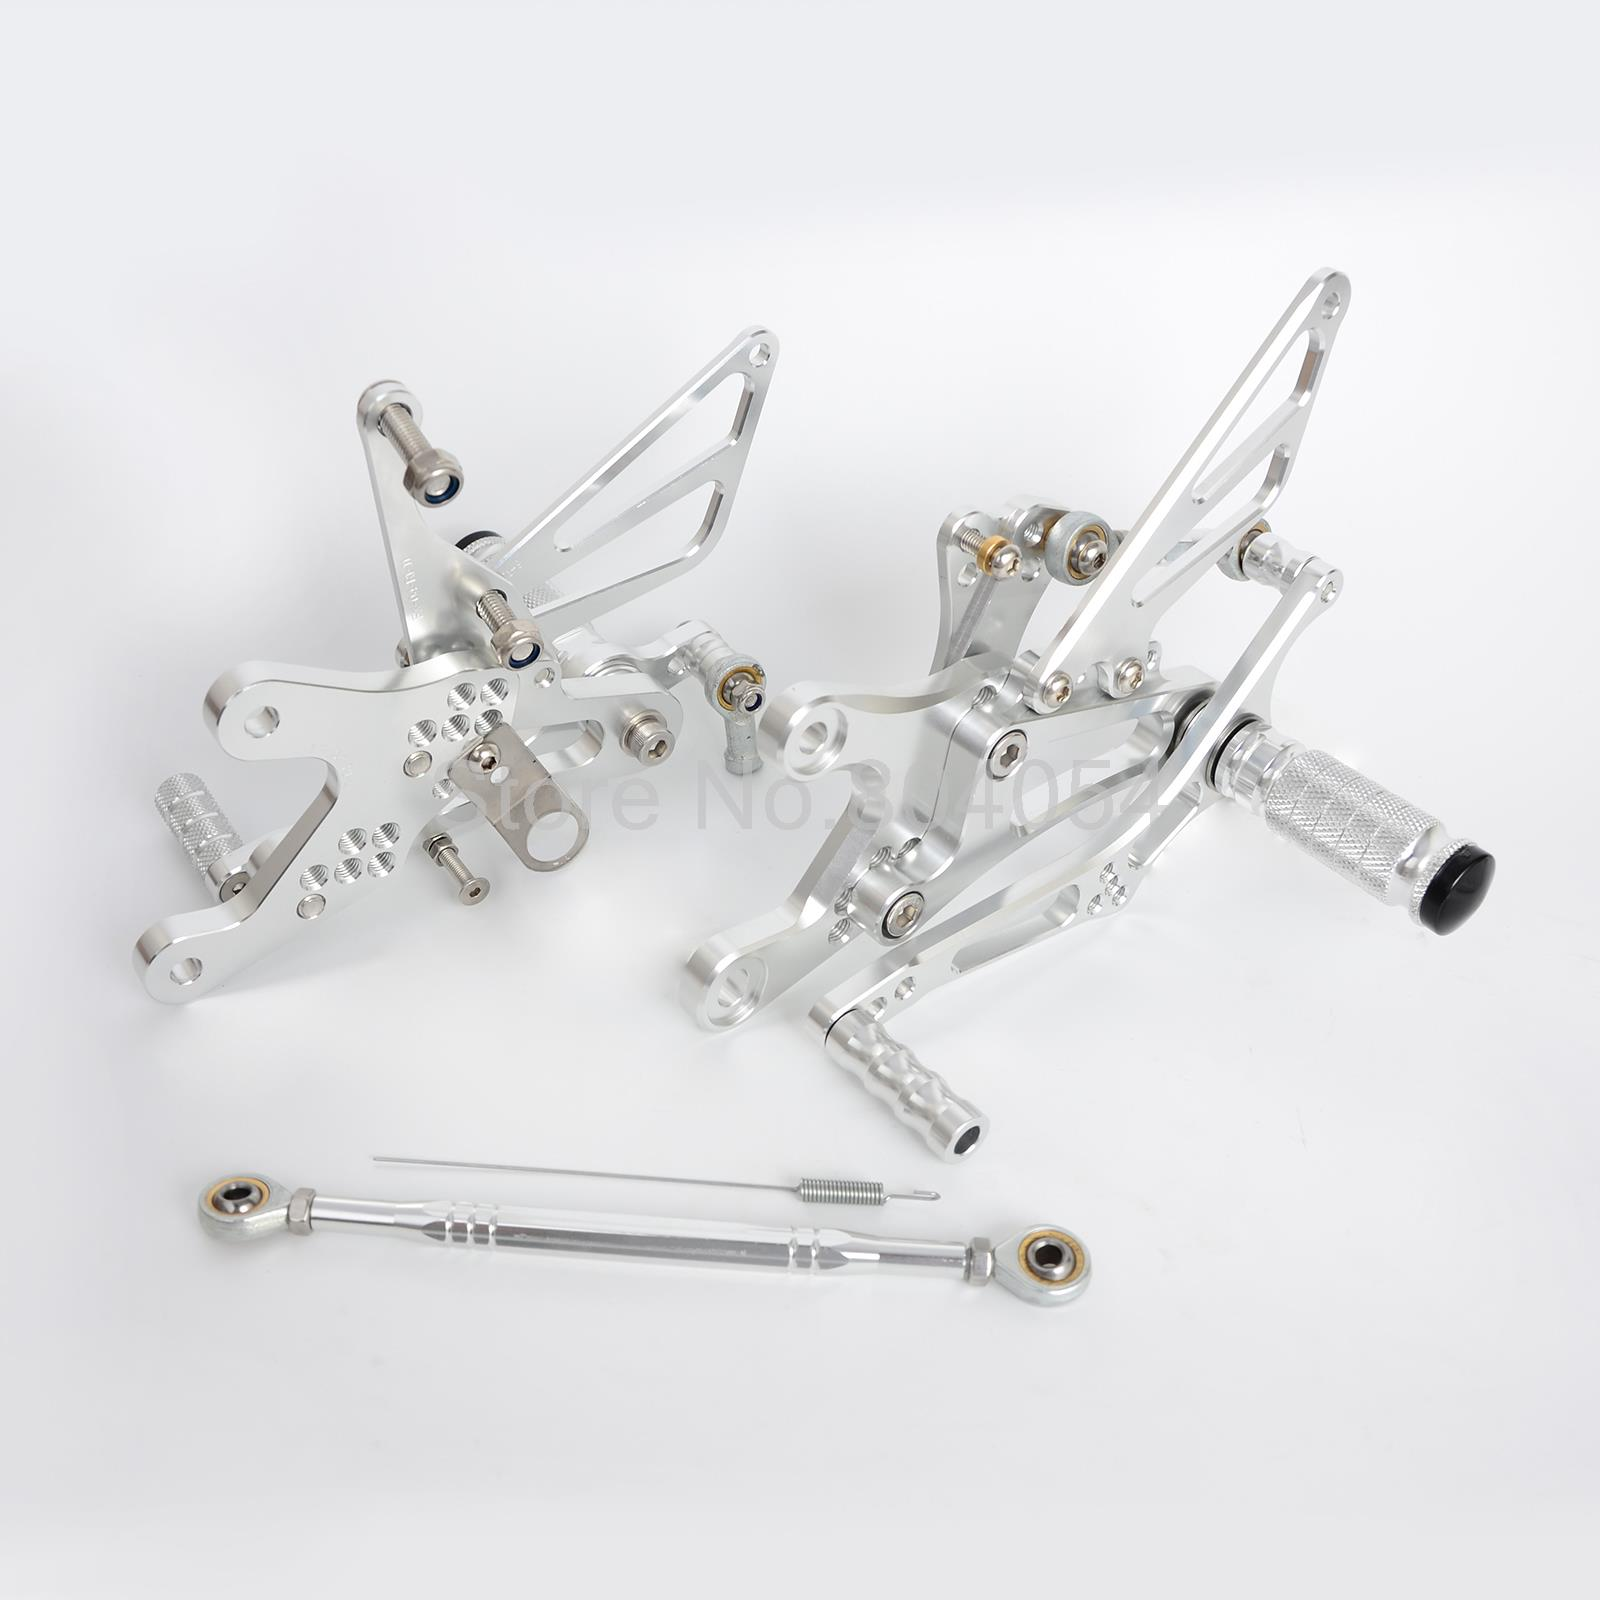 New Silver CNC Adjustable Foot pegs Rearset Footrests Rear Sets For Yamaha YZF-R6 1999 2000 2001 2002<br><br>Aliexpress